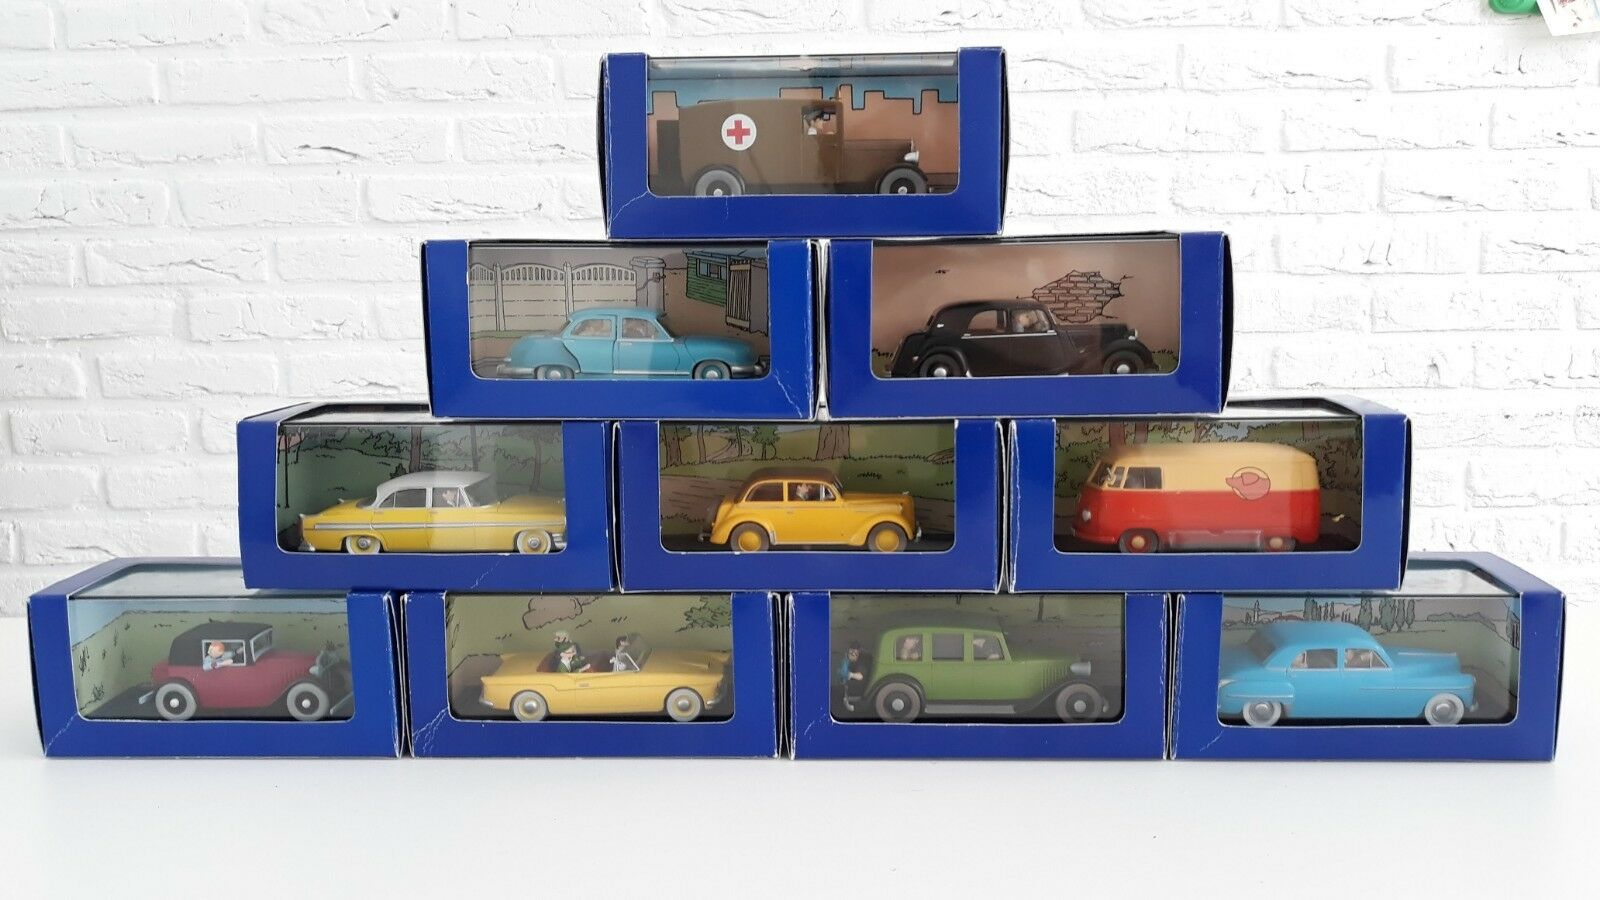 Tintin Atlas car collection 71 boxes with Metal cars + figures scale 1 43 Kuifje